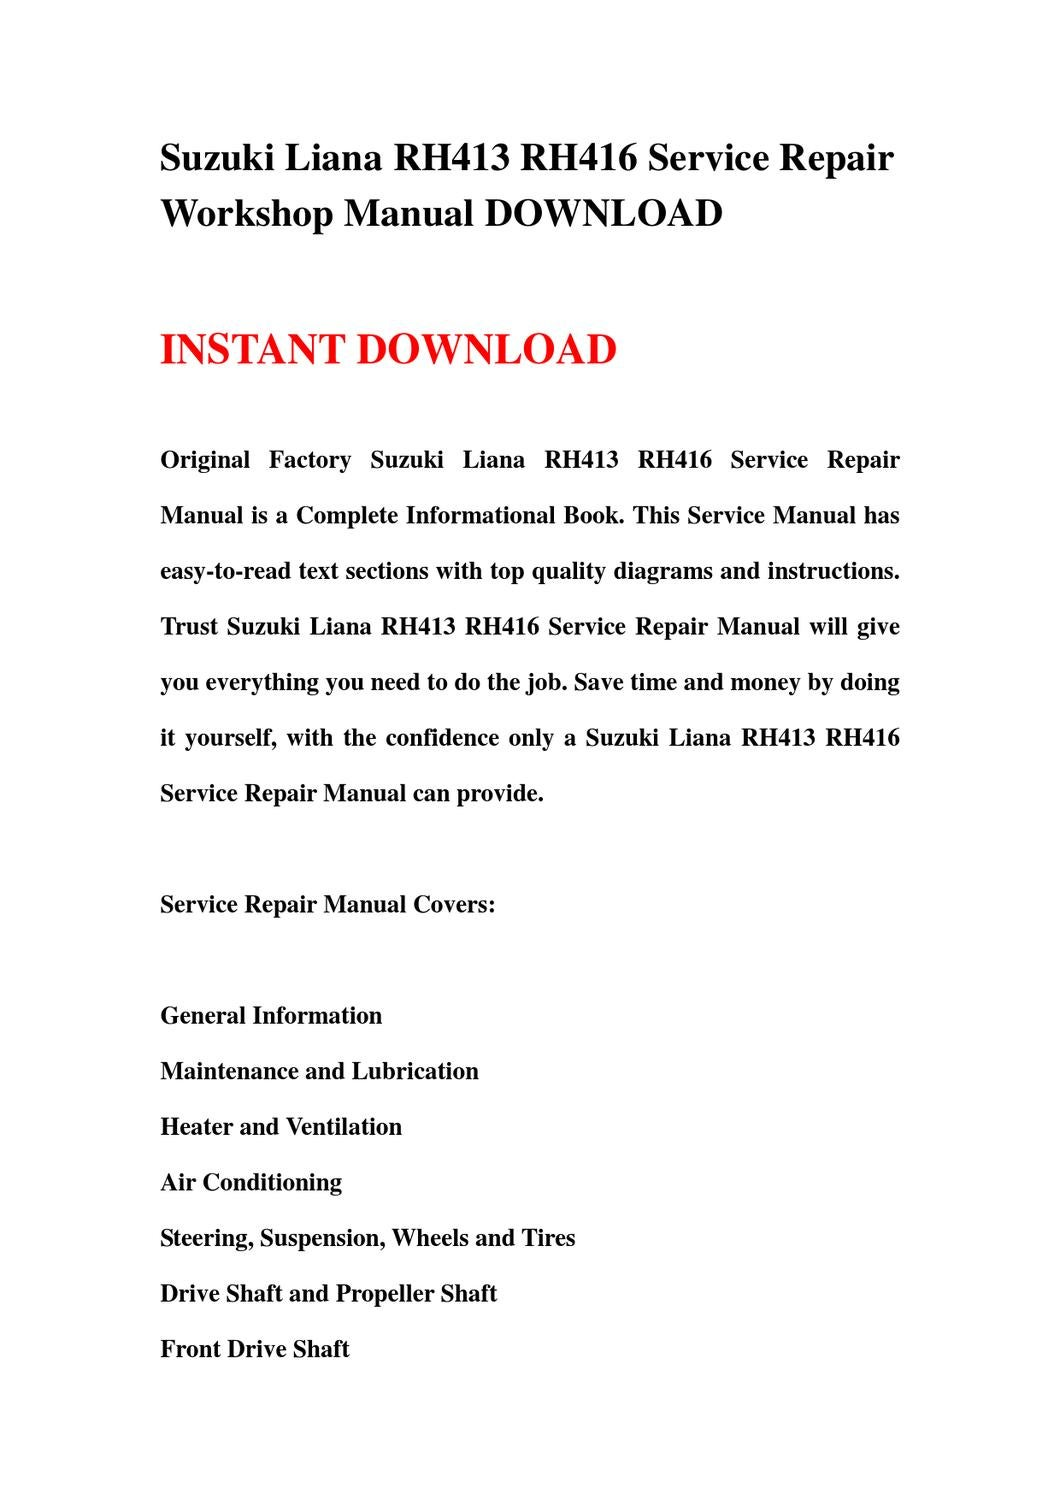 Suzuki Liana Rh413 Rh416 Service Repair Workshop Manual